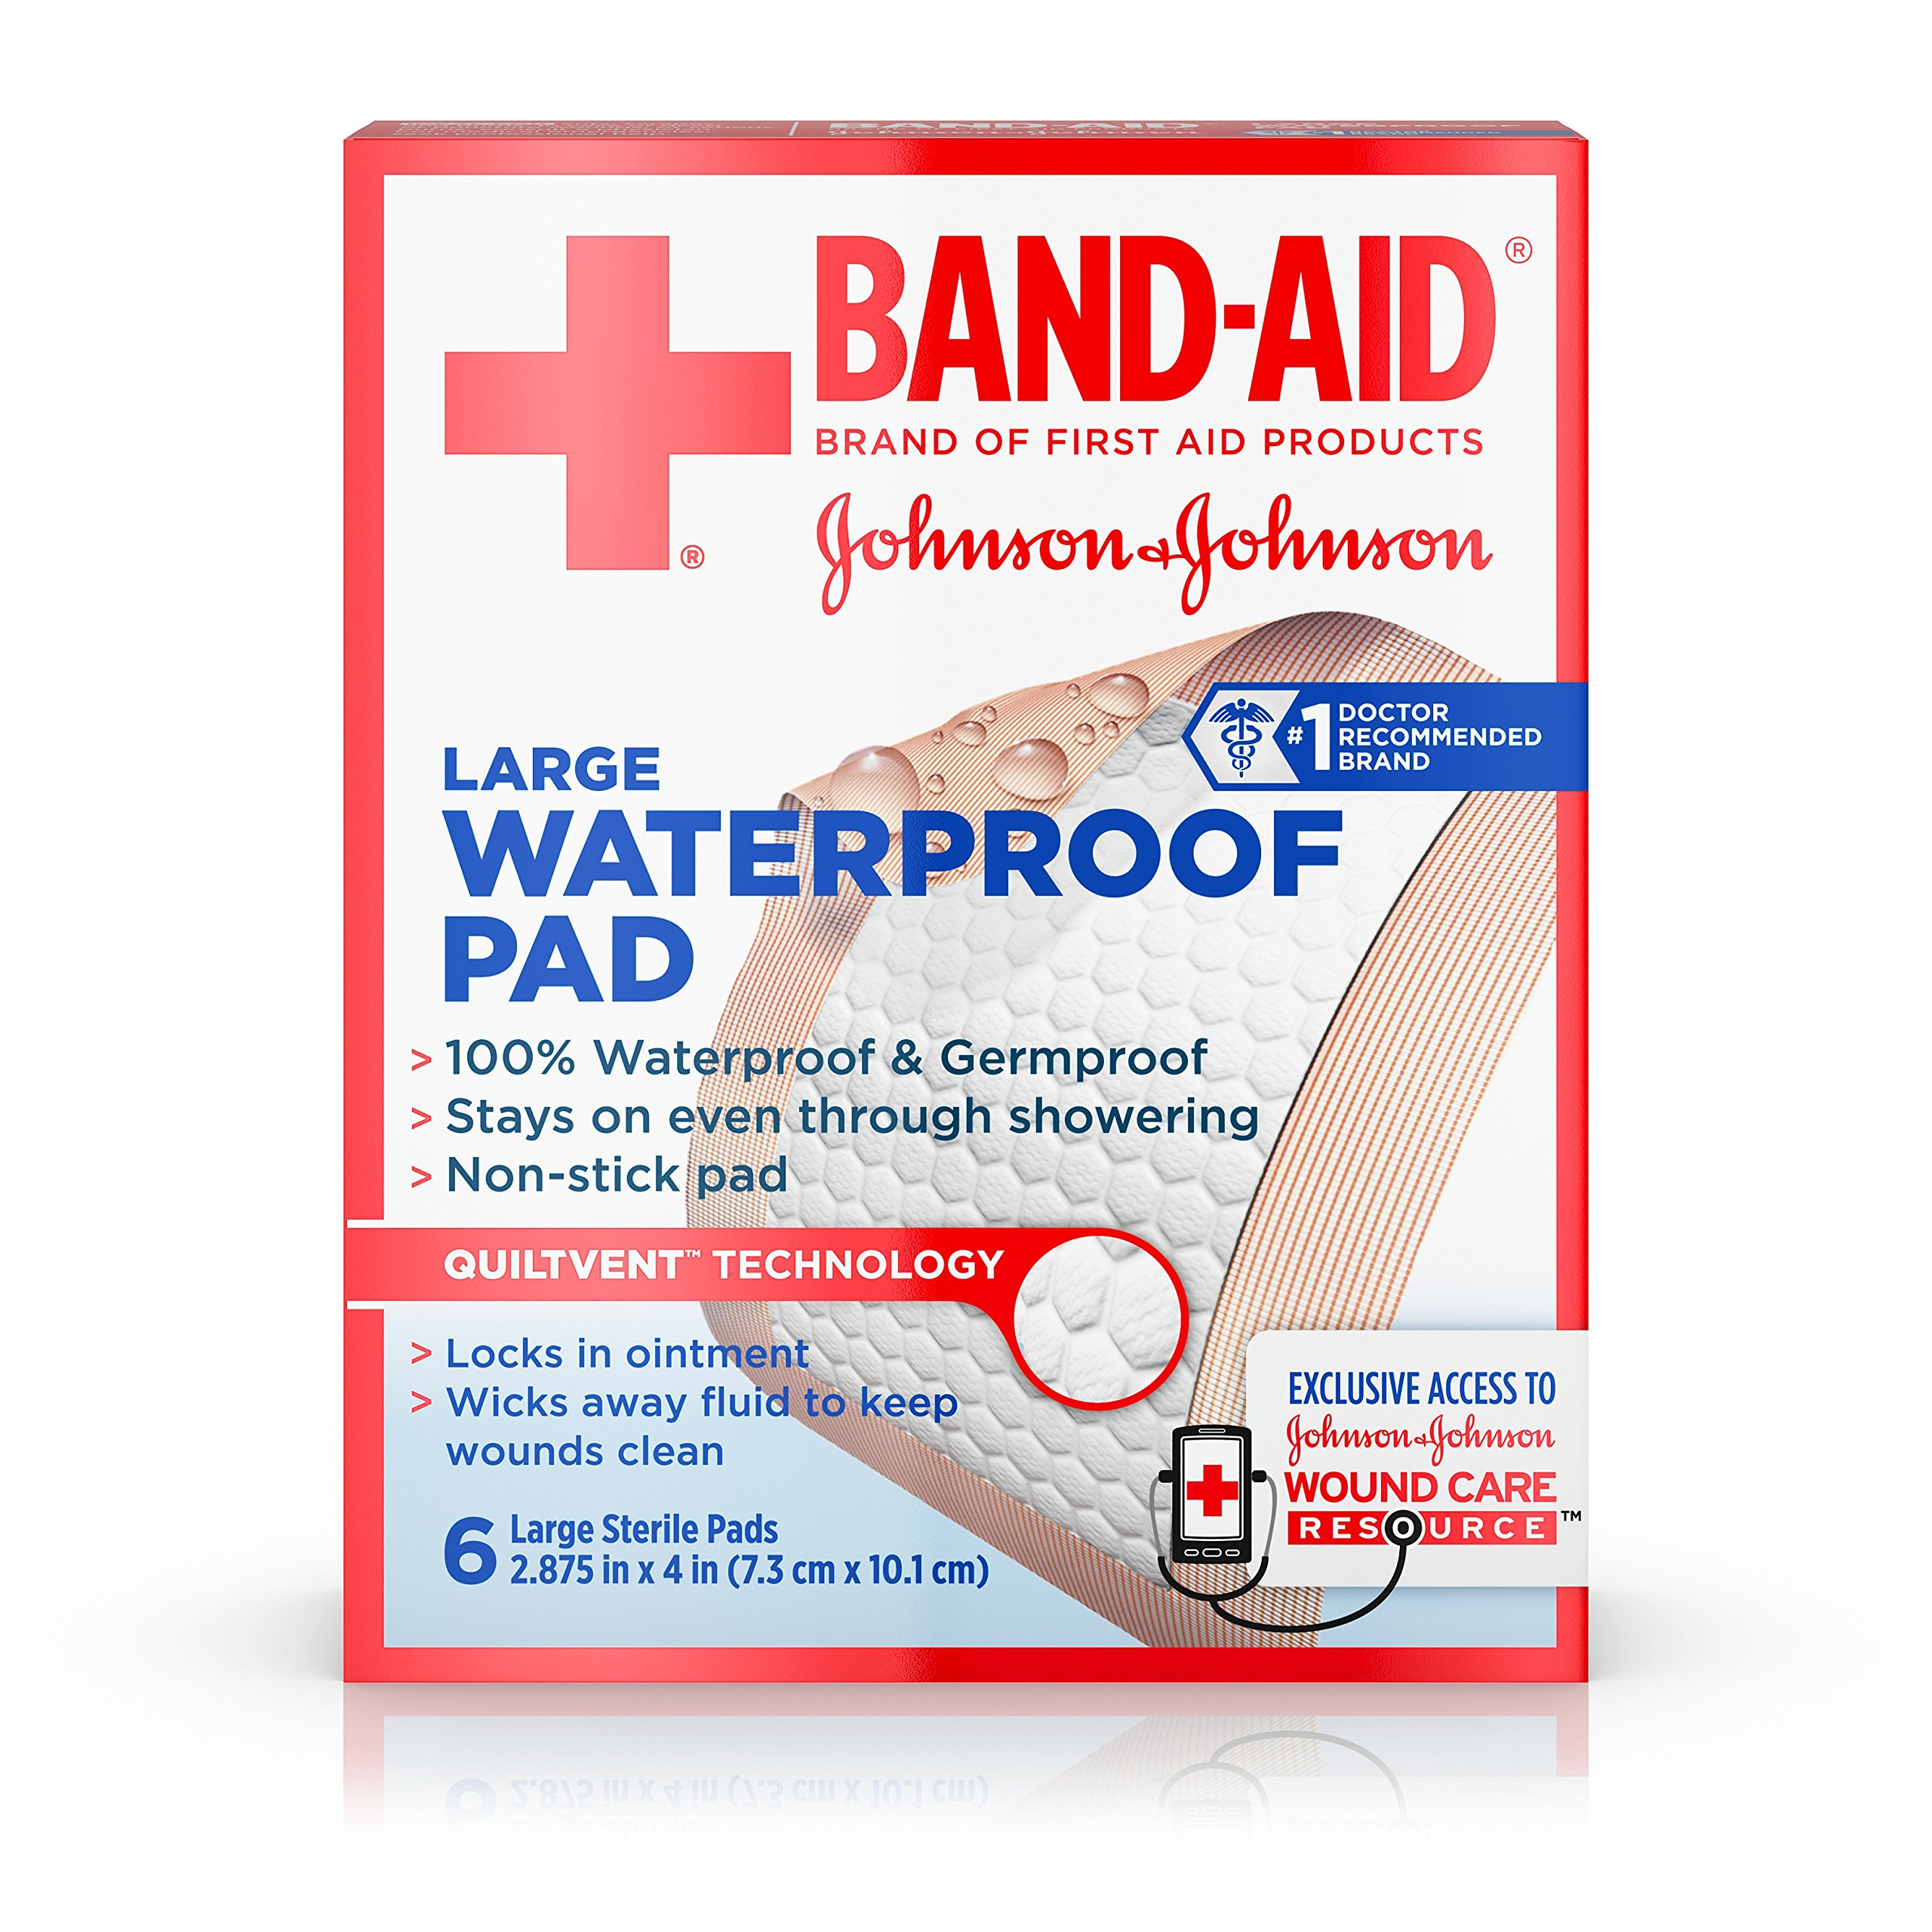 Band-Aid Brand of First Aid Products Large Waterproof Pads, 2.875 x 4 Inches, 6 Count (pack of 6)